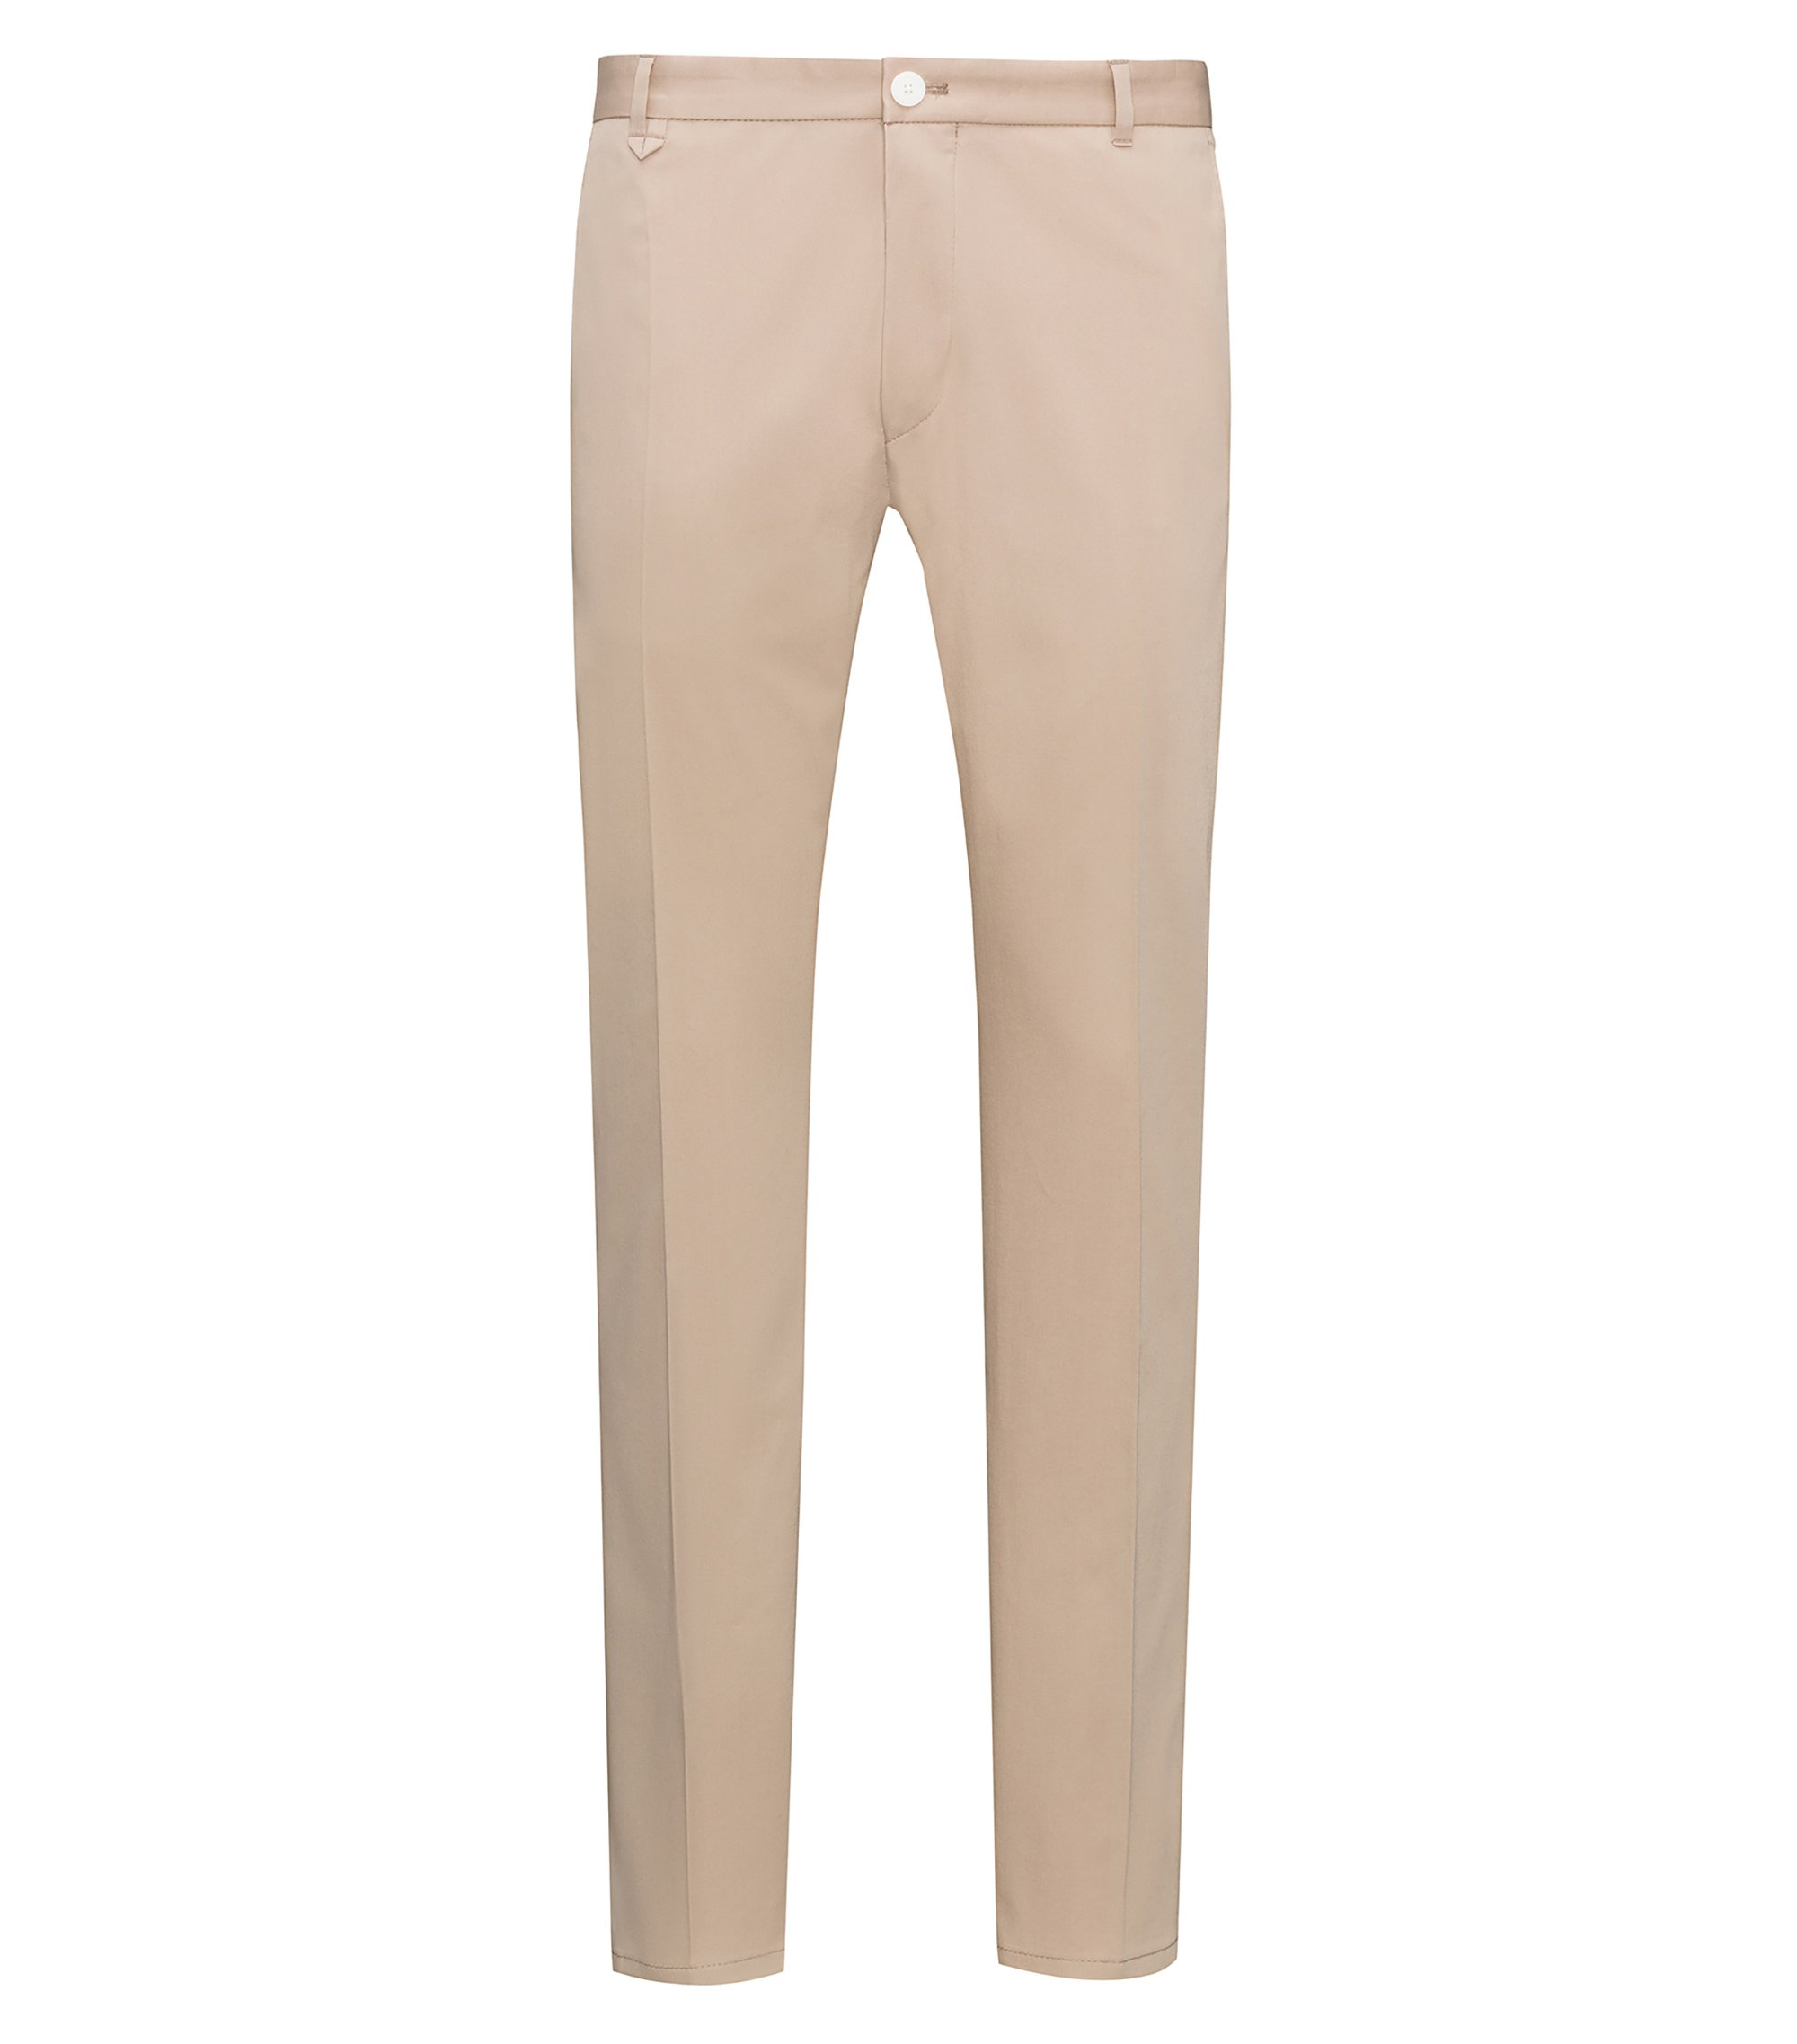 Stretch Cotton Pants, Extra Slim Fit | Heldor, Beige